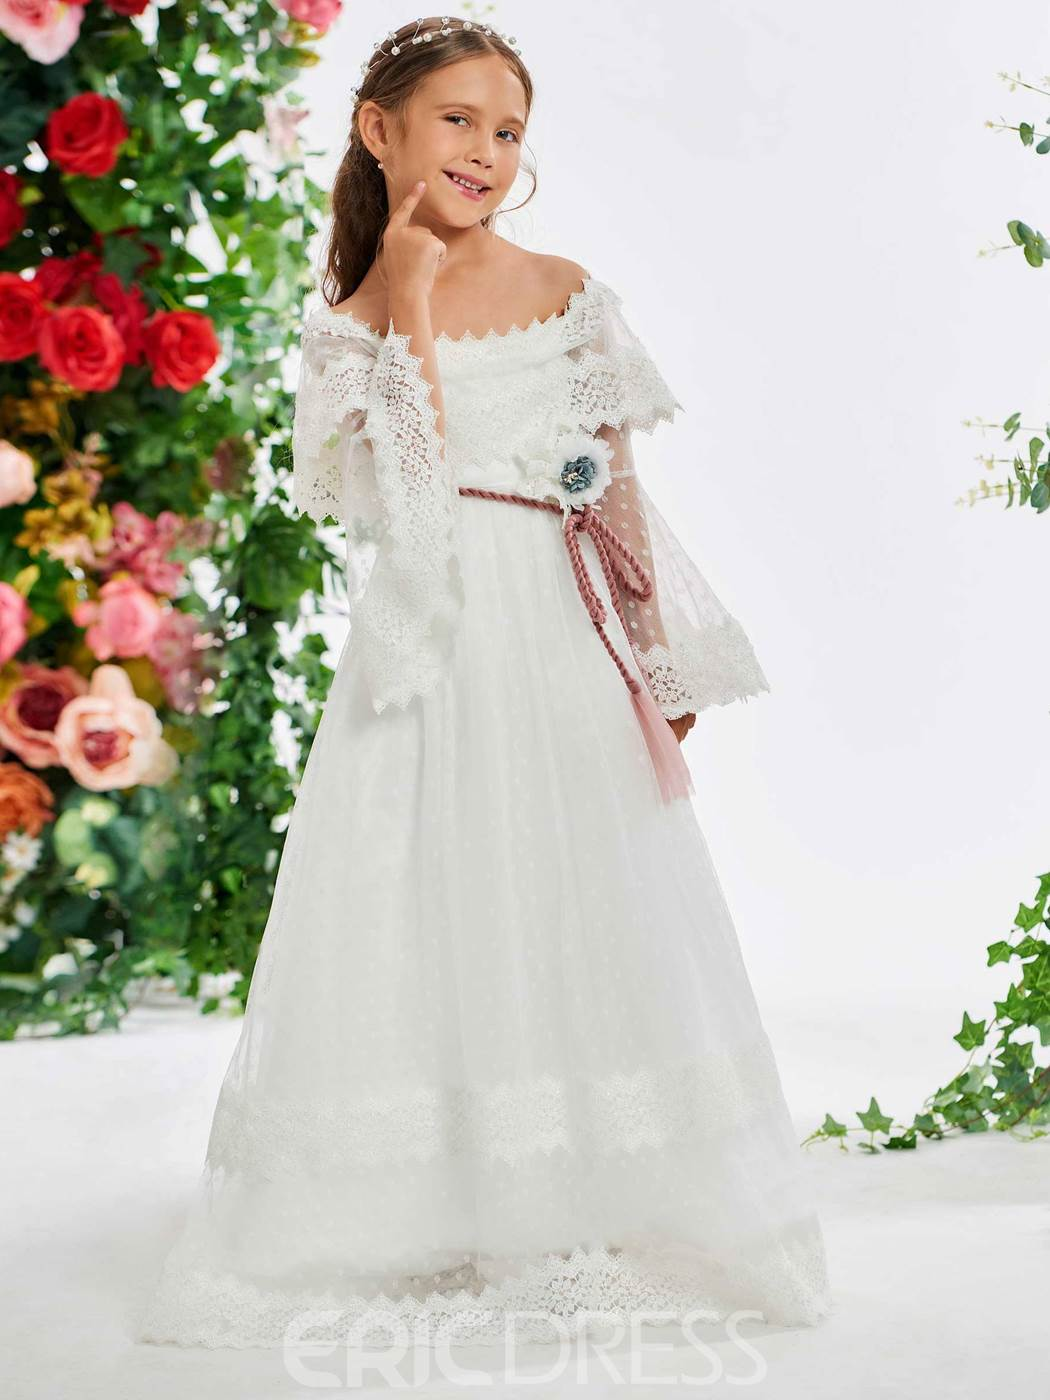 Ericdress Off the Shoulder Sashes Lace Flower Girl Dress